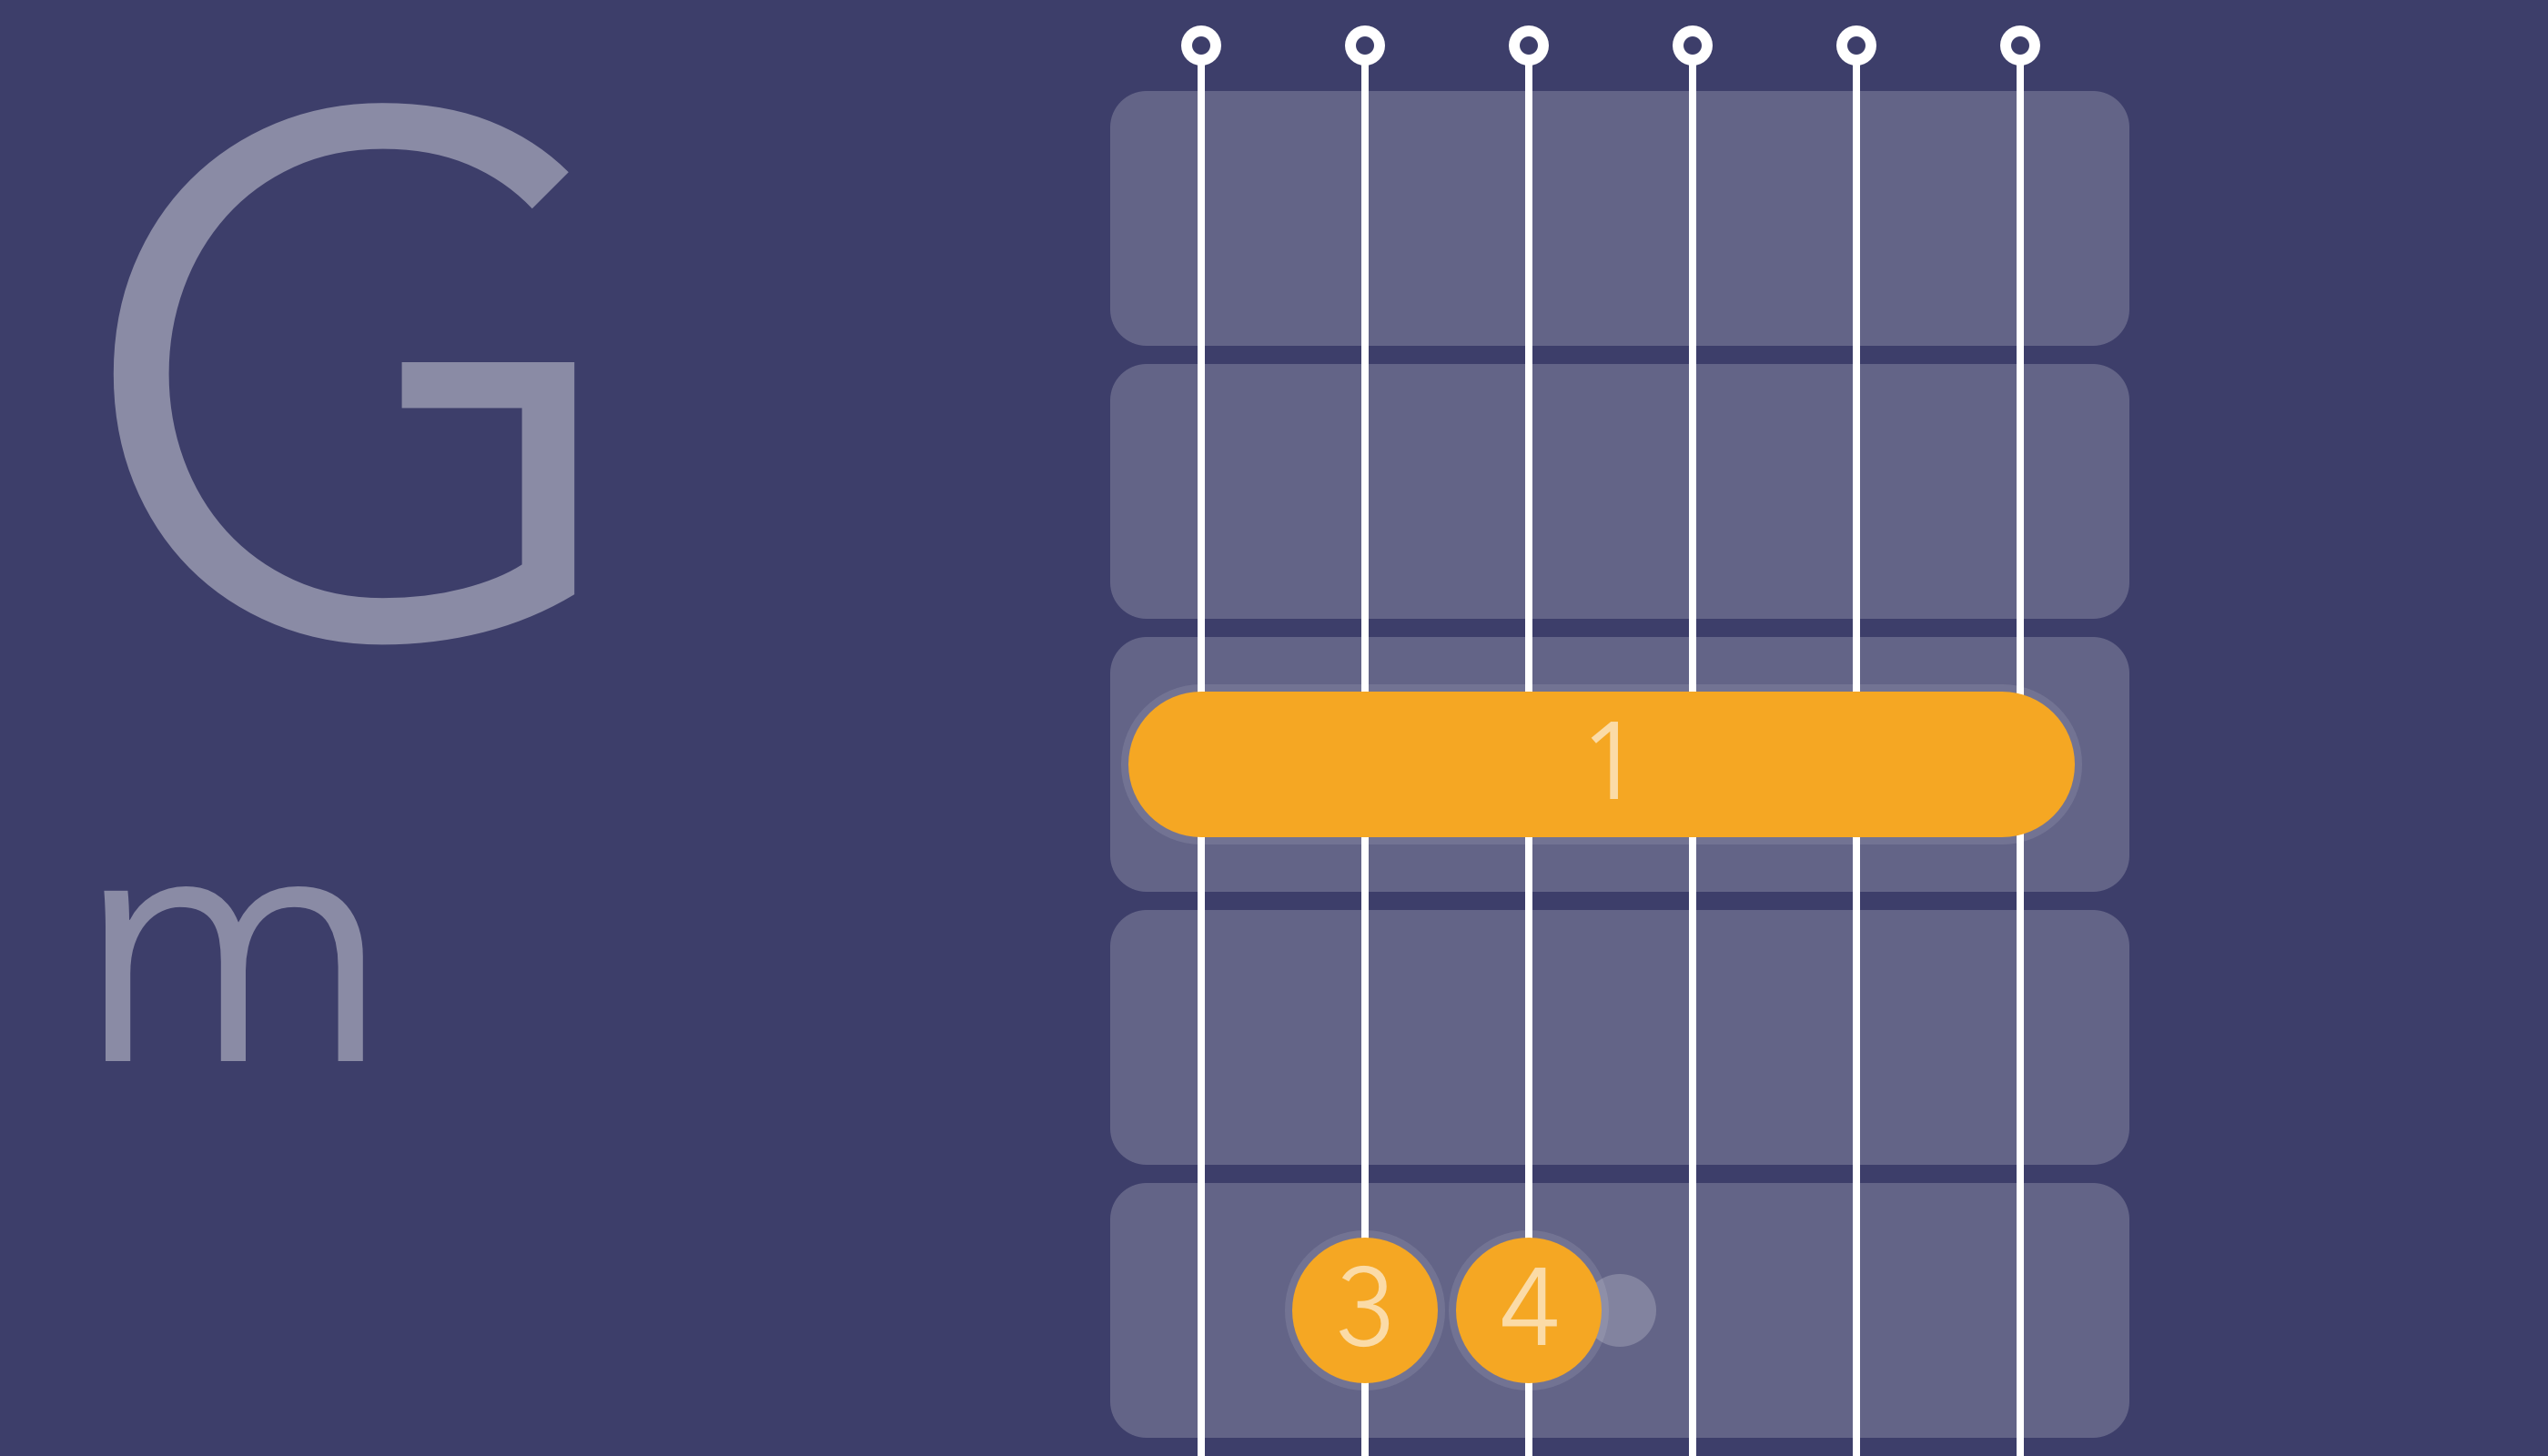 Gm Guitar Chord Ask Jamy For More Chords On Messenger Httpswww